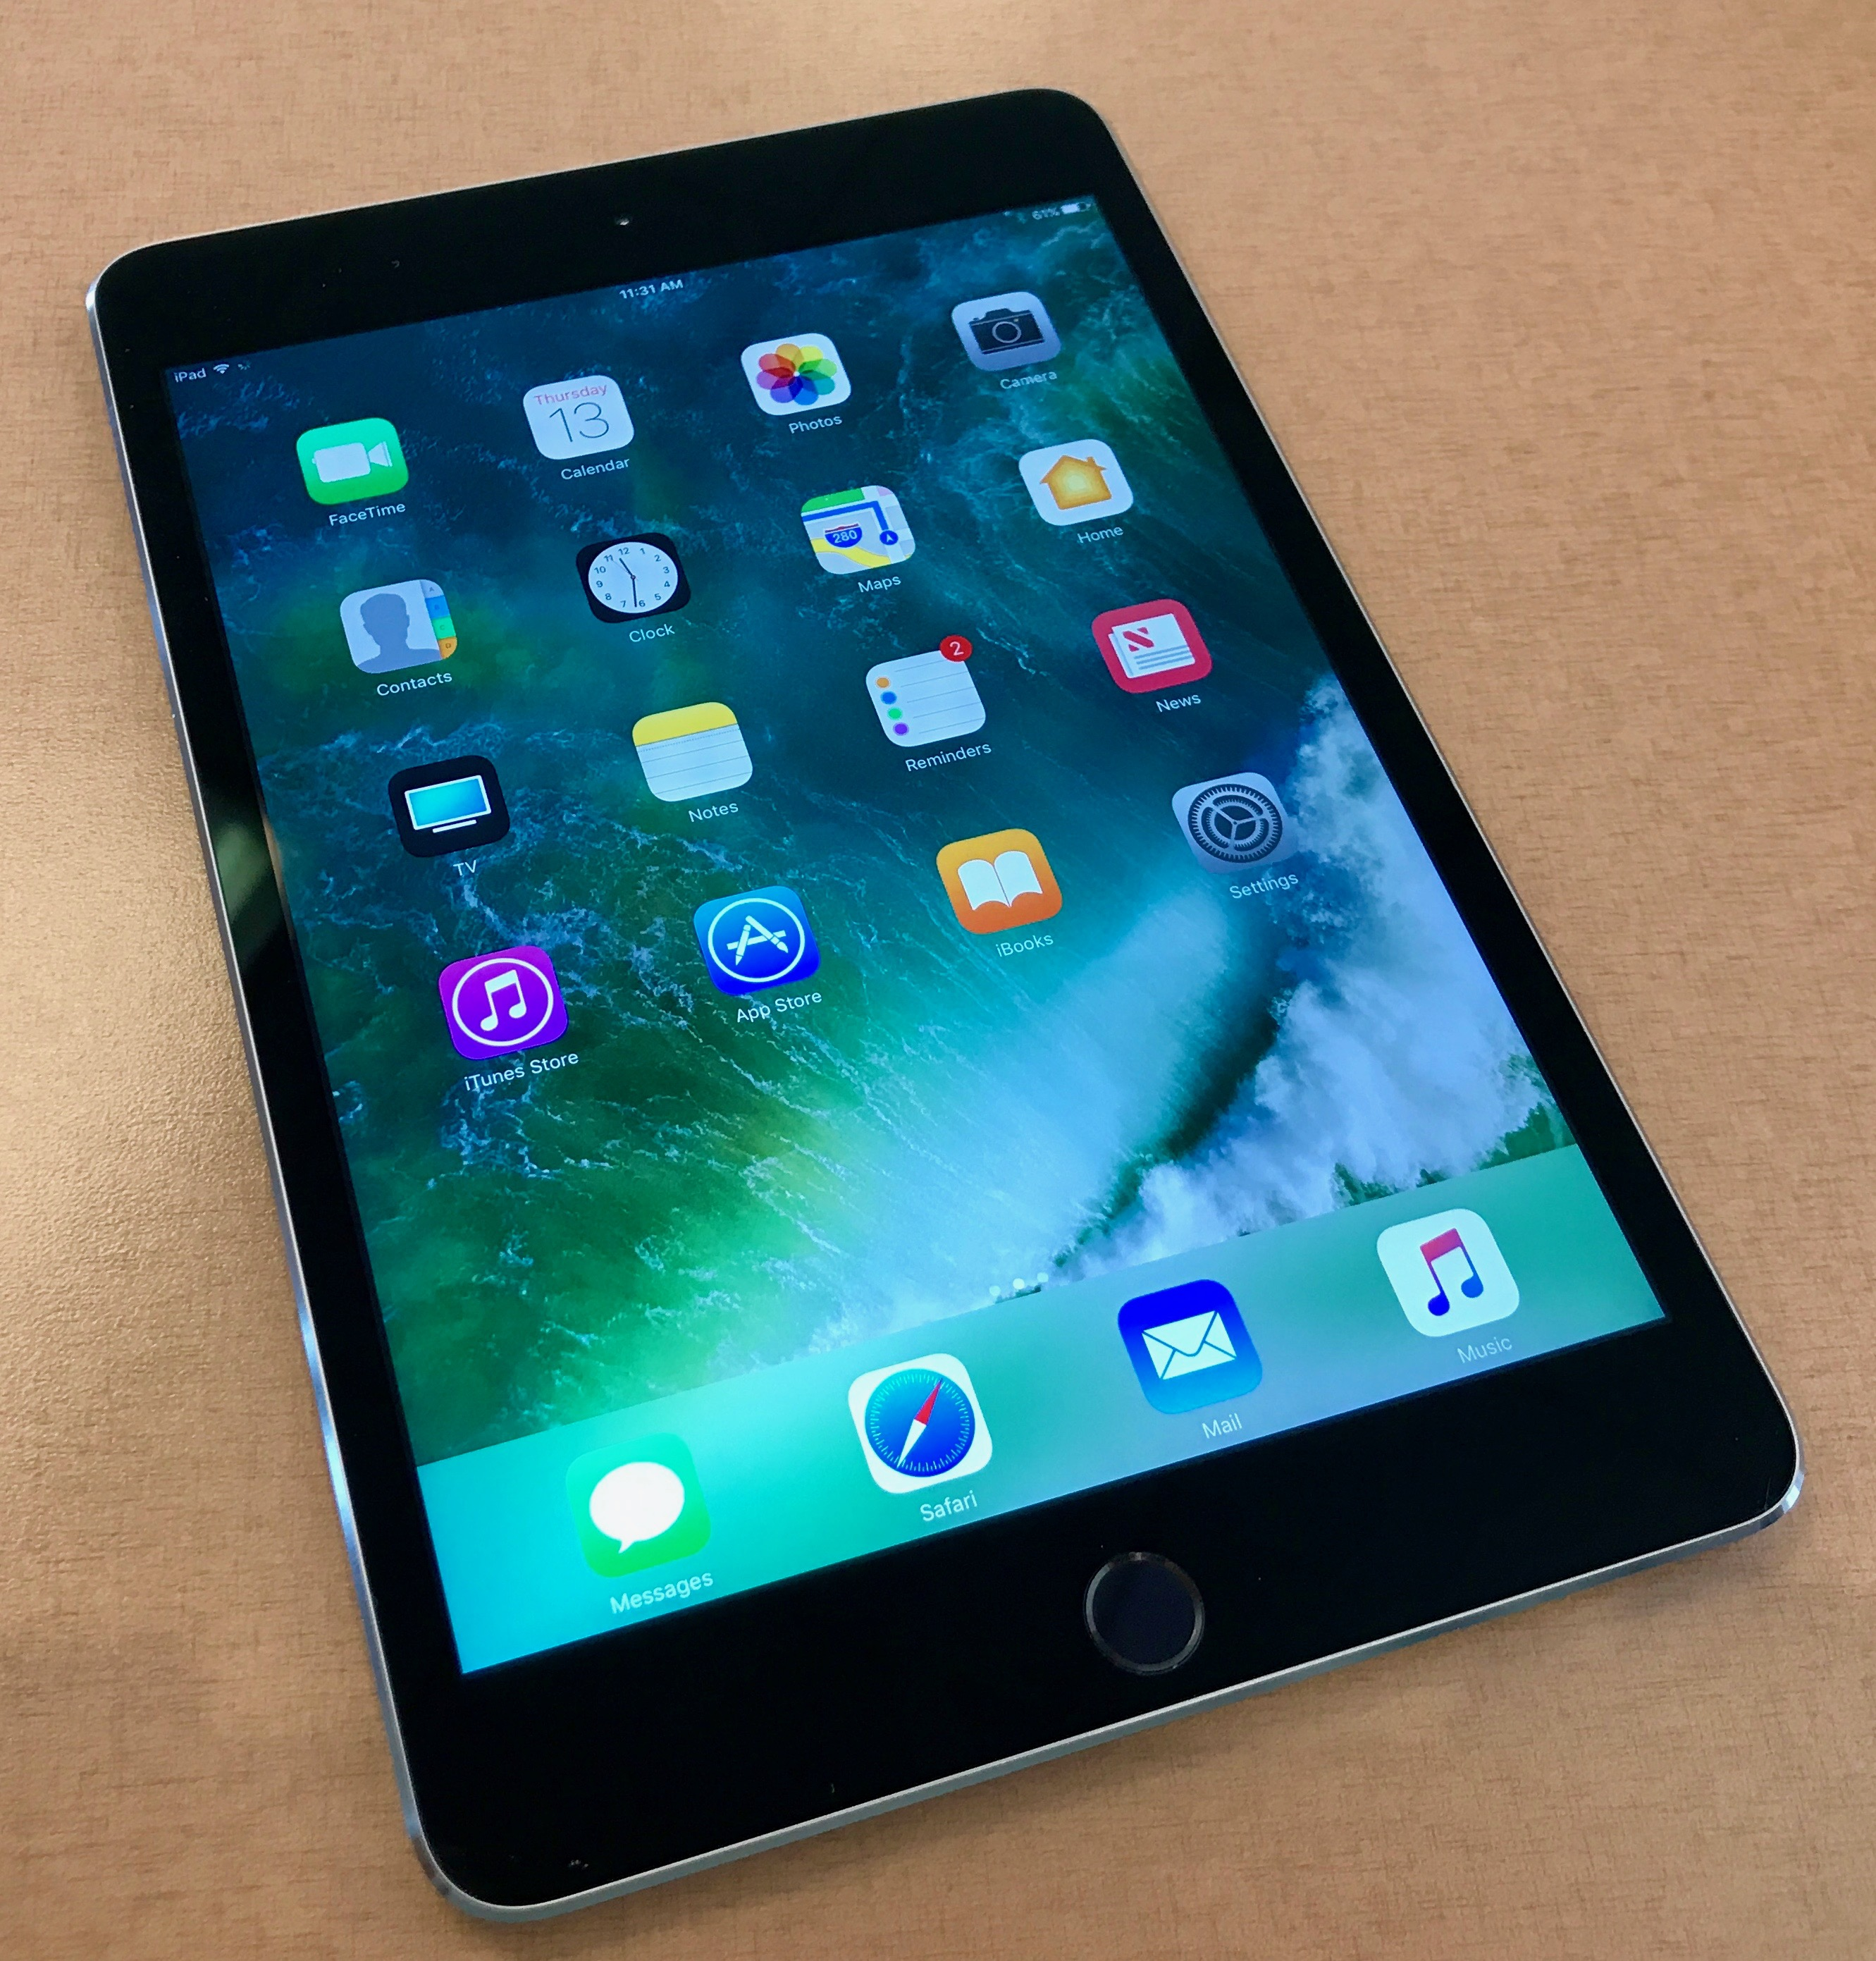 128gb apple ipad mini 4 review new lower price. Black Bedroom Furniture Sets. Home Design Ideas